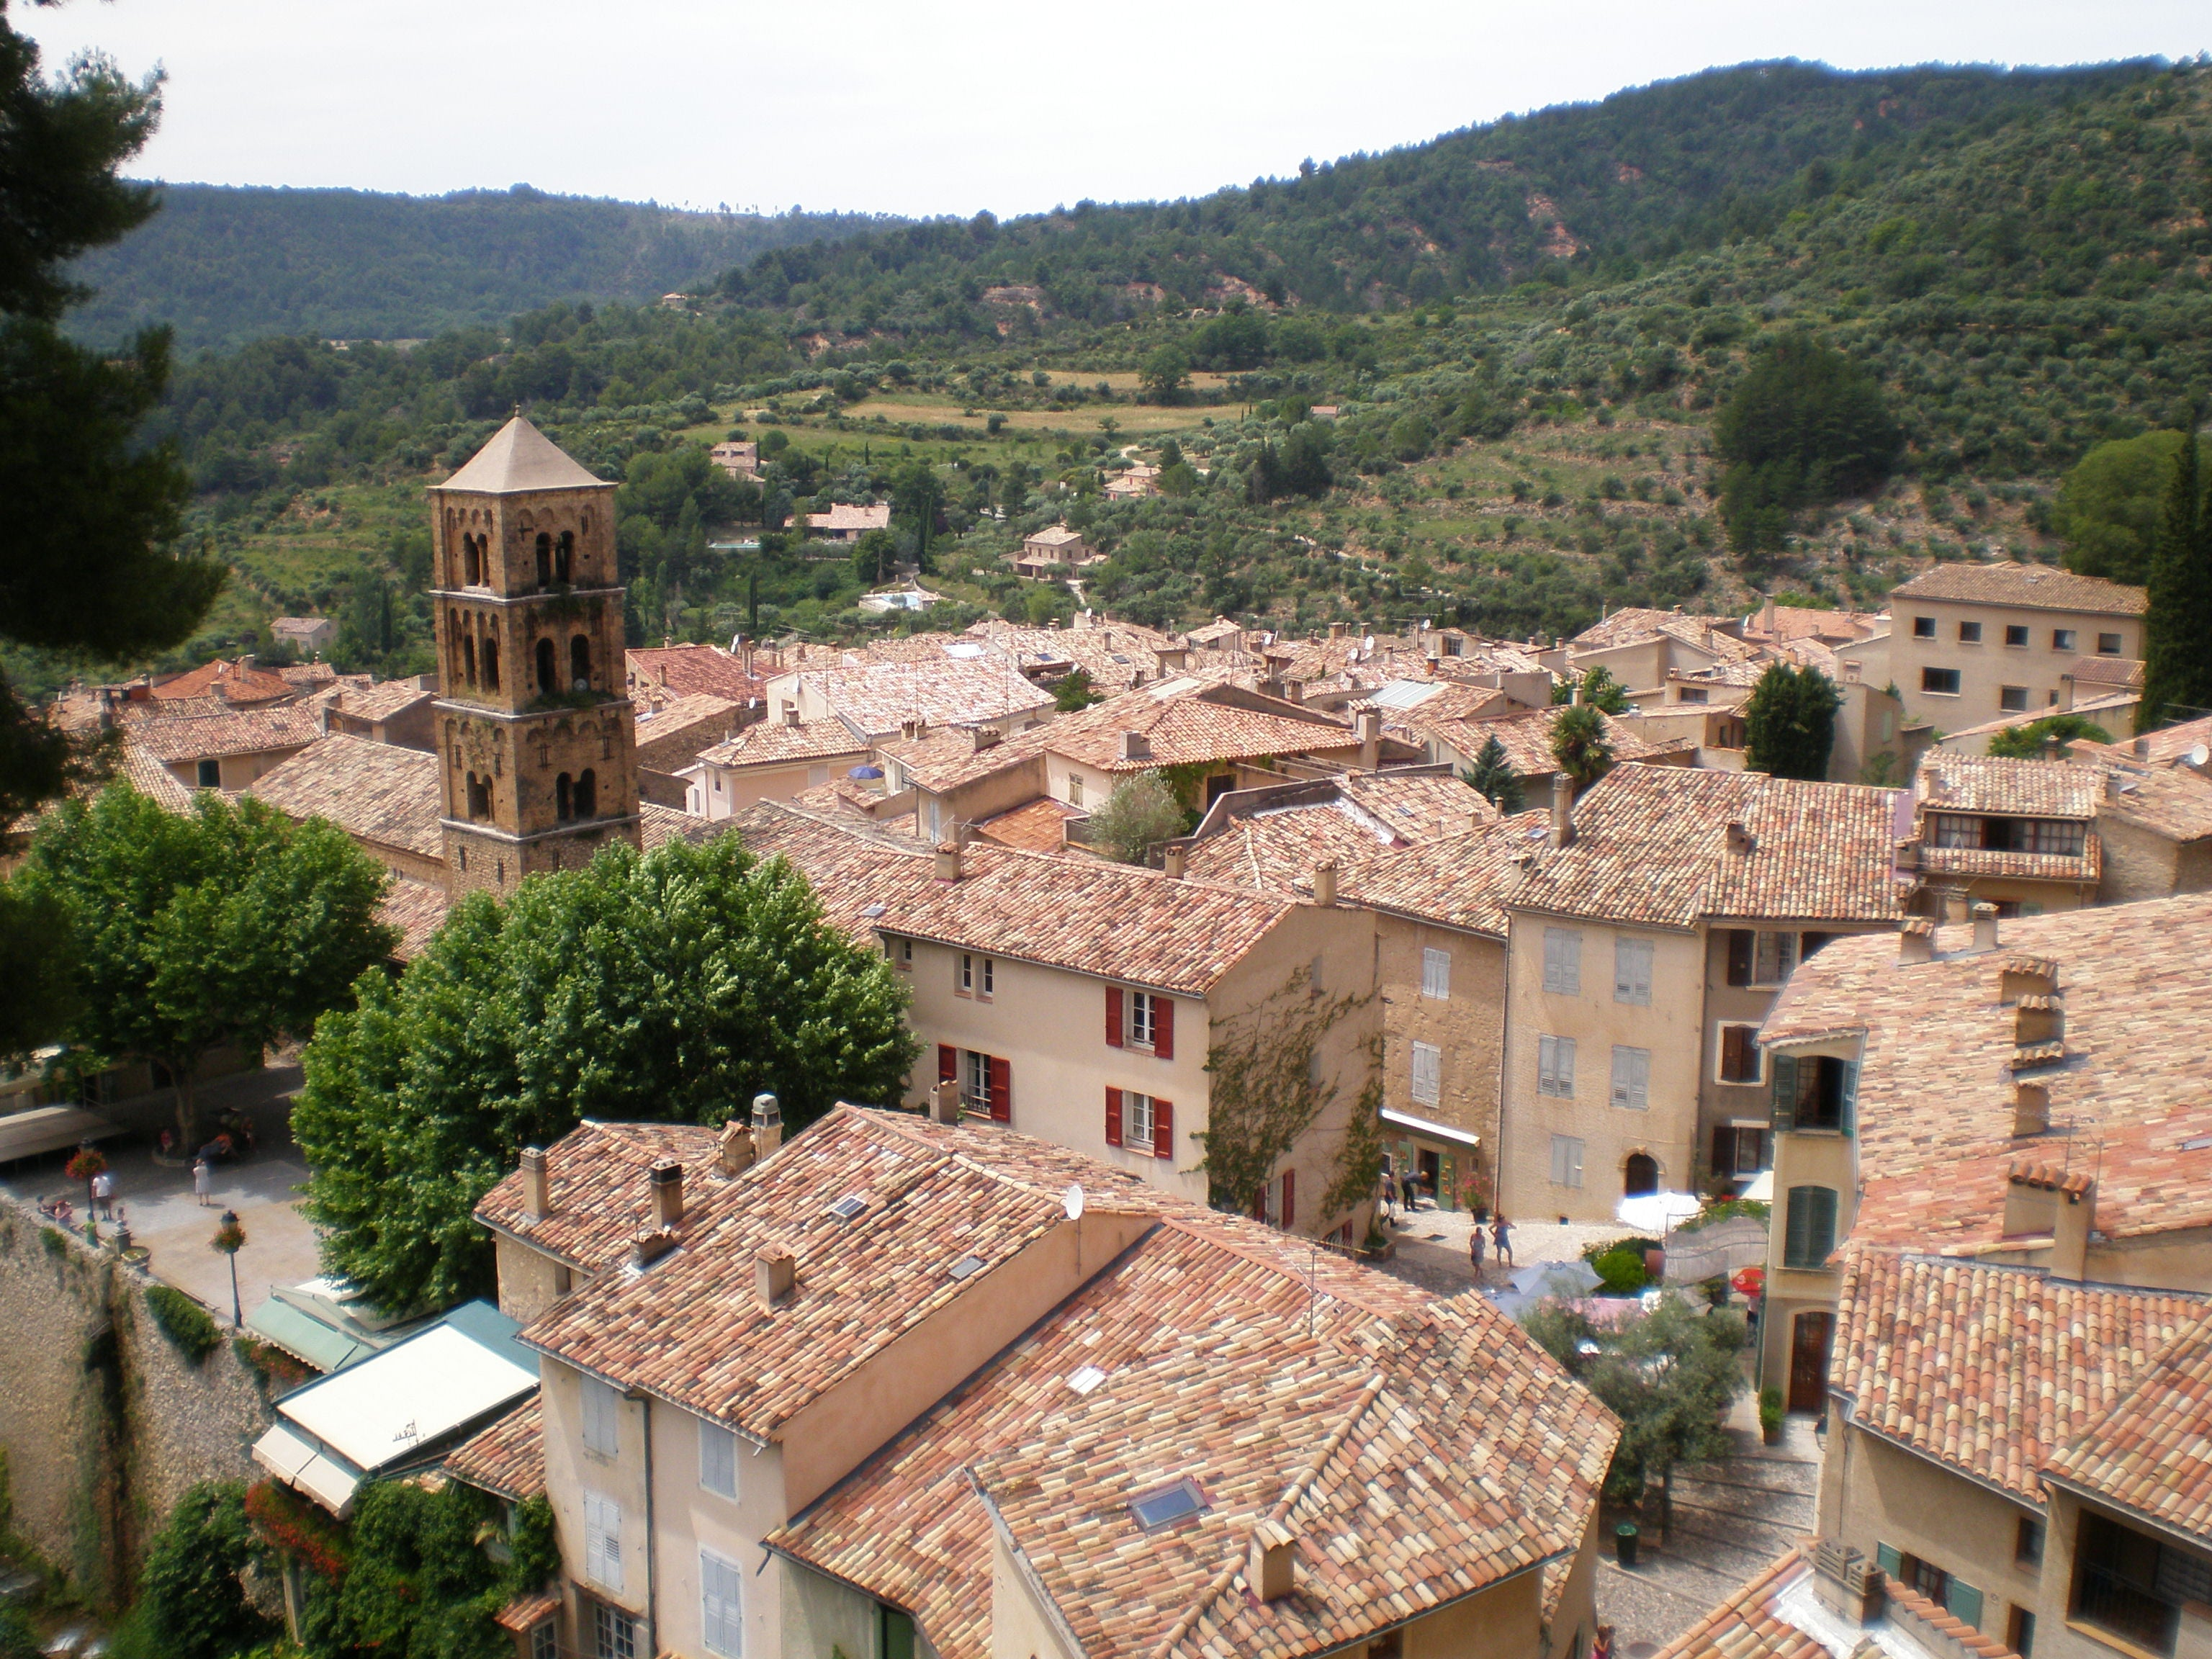 Village in Moustiers-Sainte-Marie